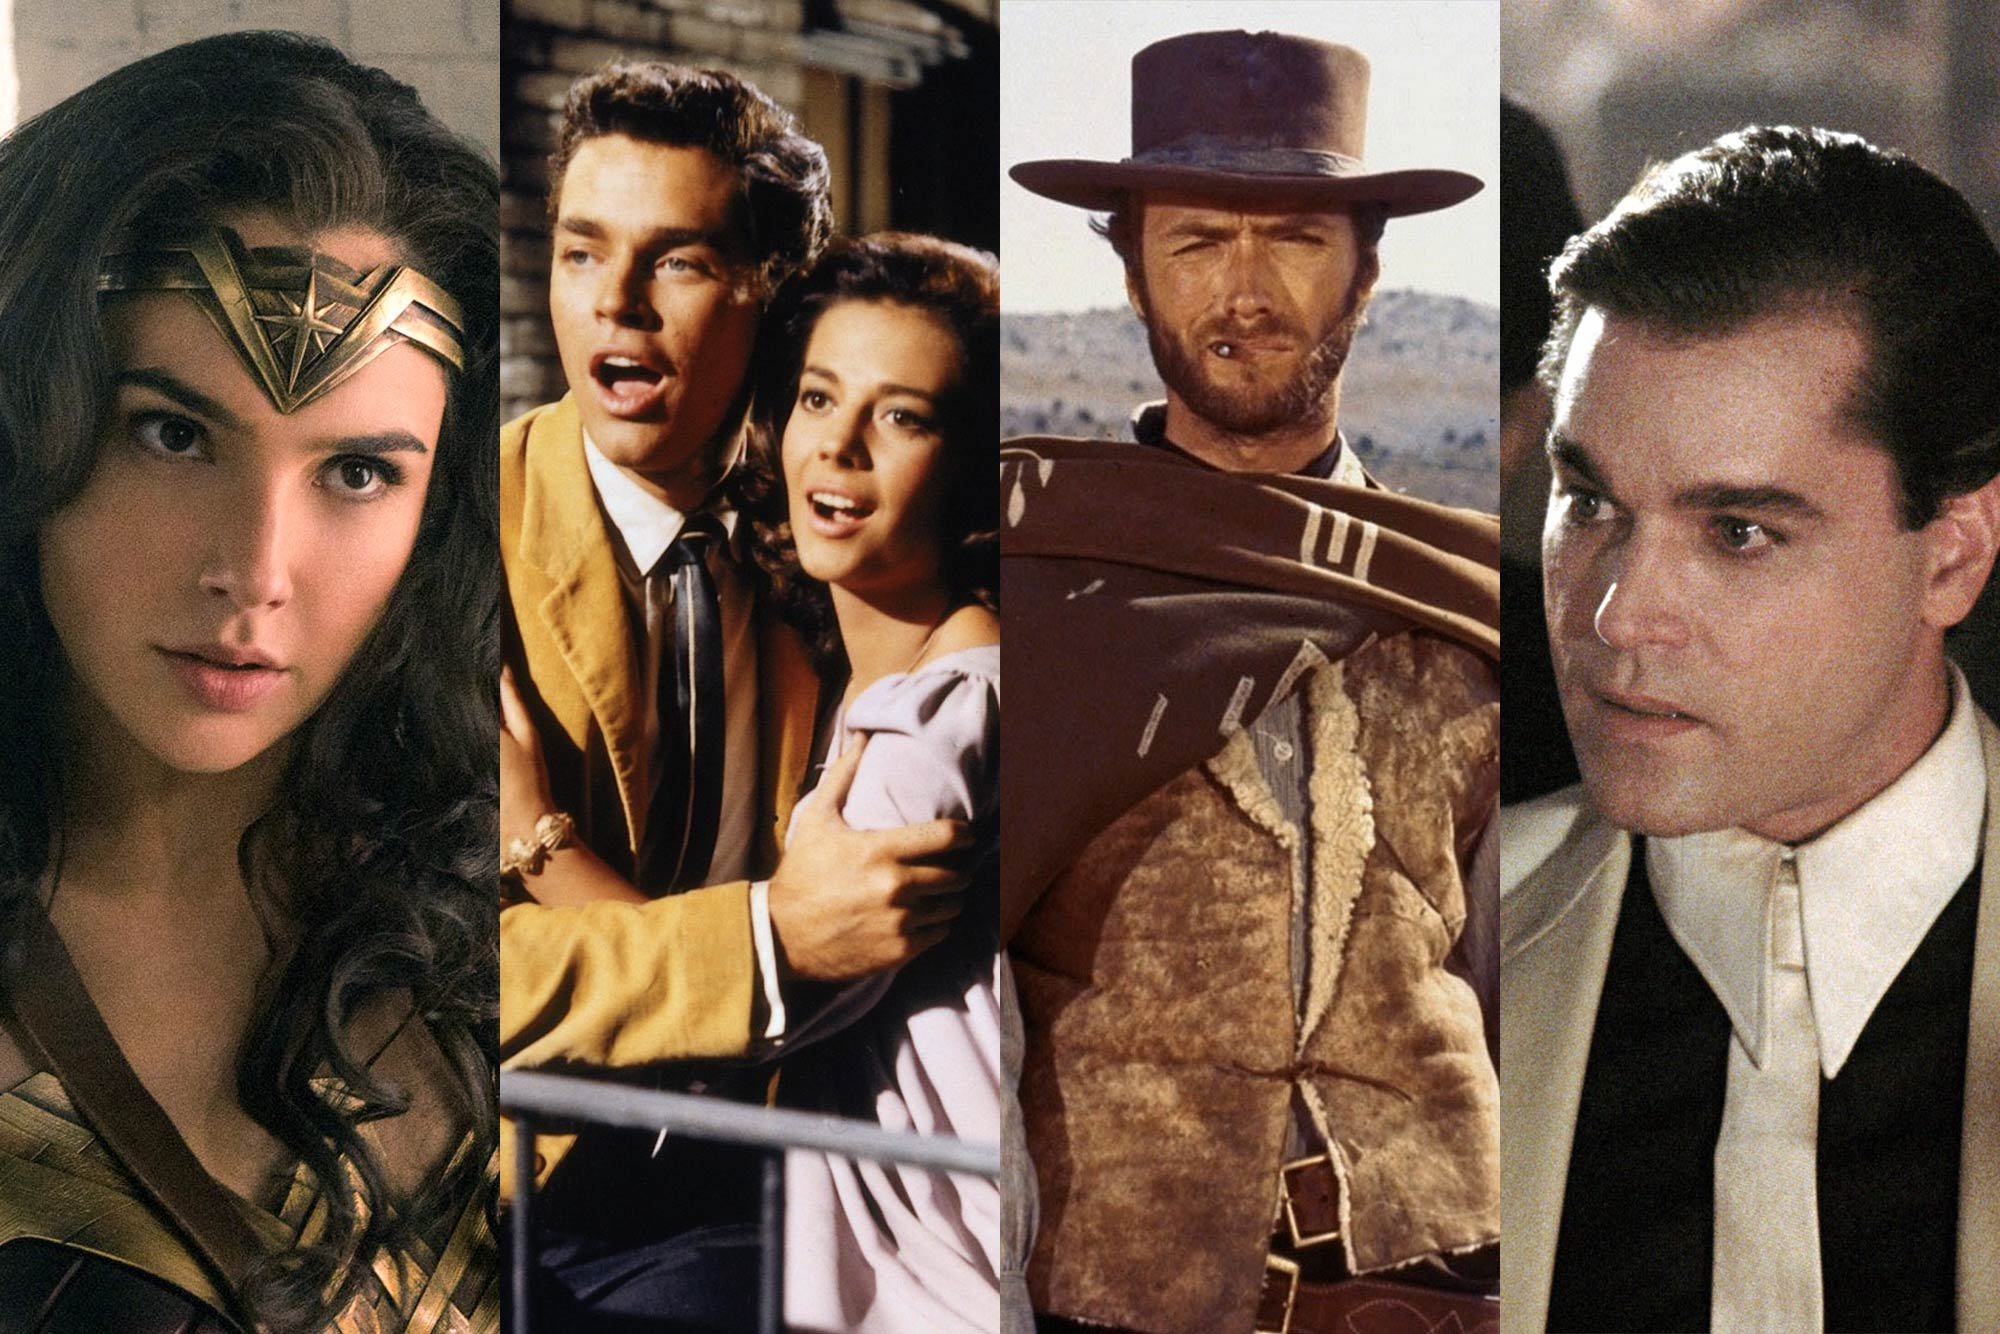 Wonder Woman, West Side Story, The Good, The Bad and the Ugly, GoodFellas.